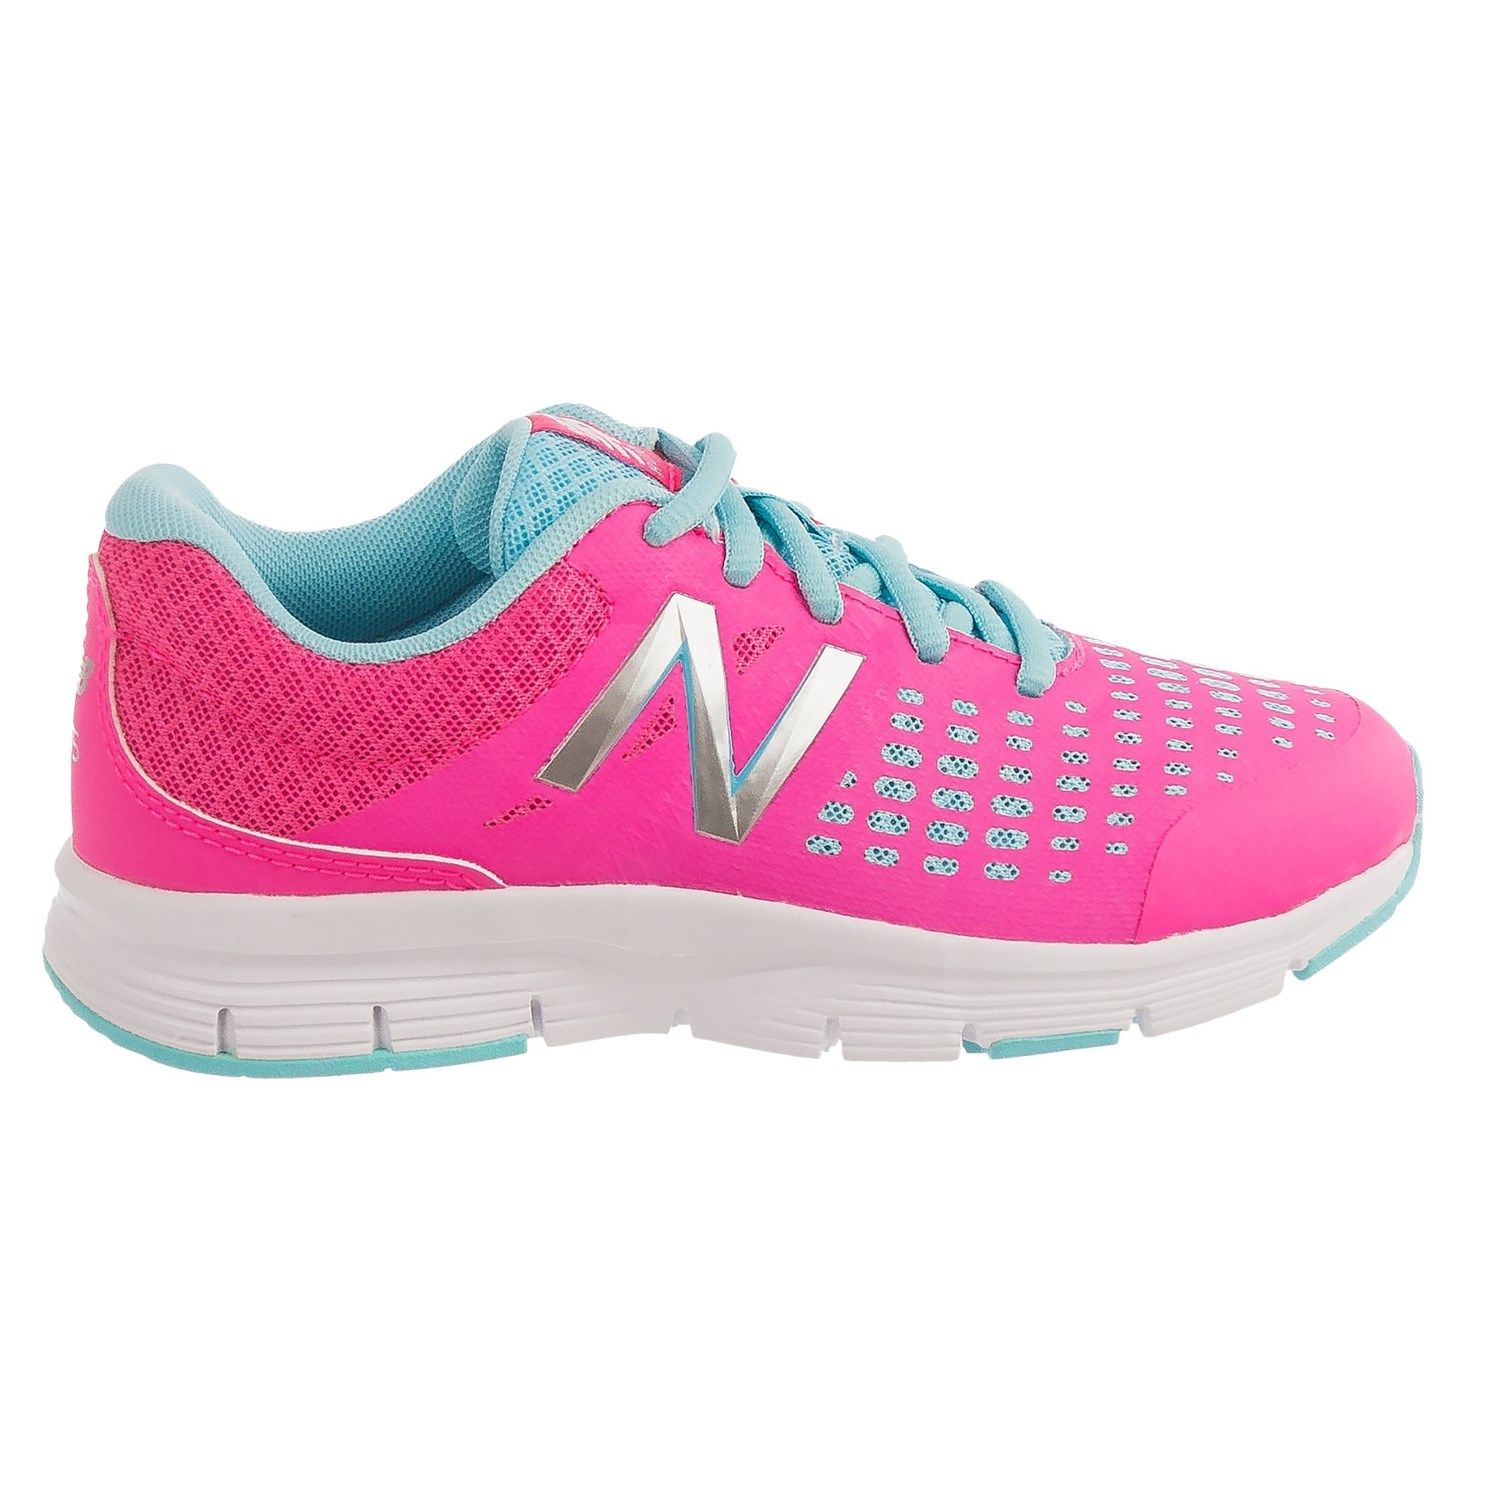 New Balance Running Shoes For Girls Size